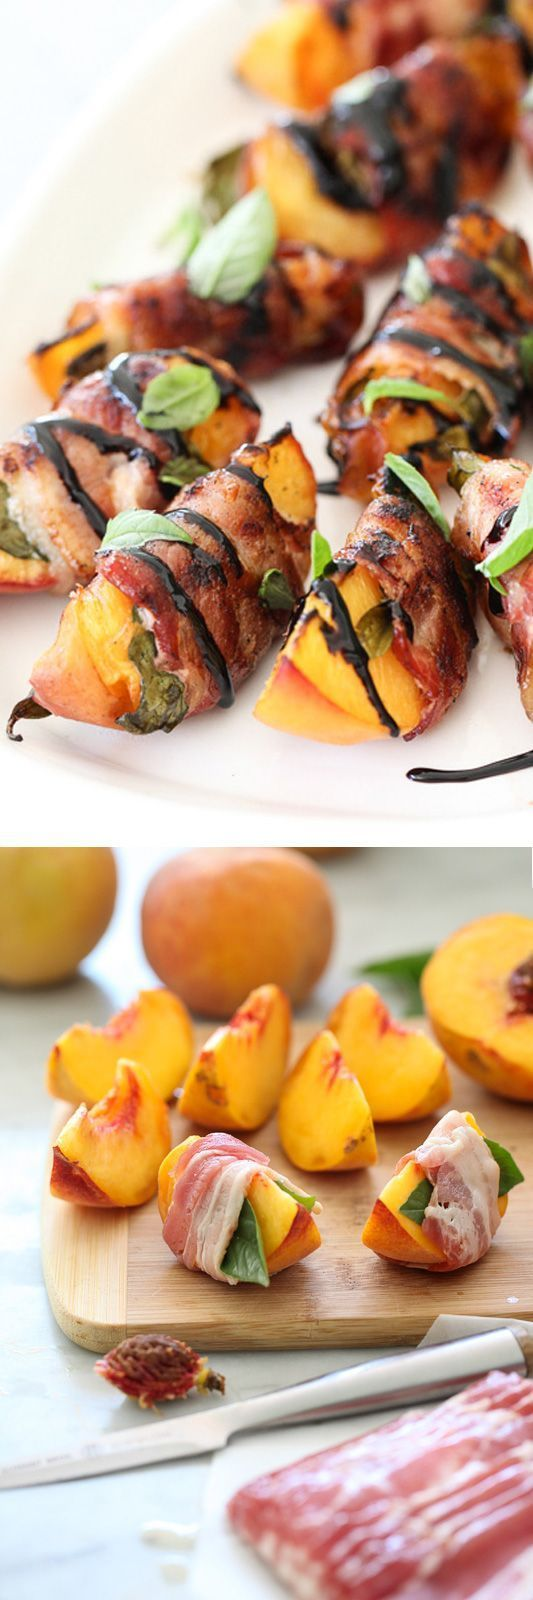 awesome Bacon Wrapped Grilled Peaches with Balsamic Glaze - foodiecrush